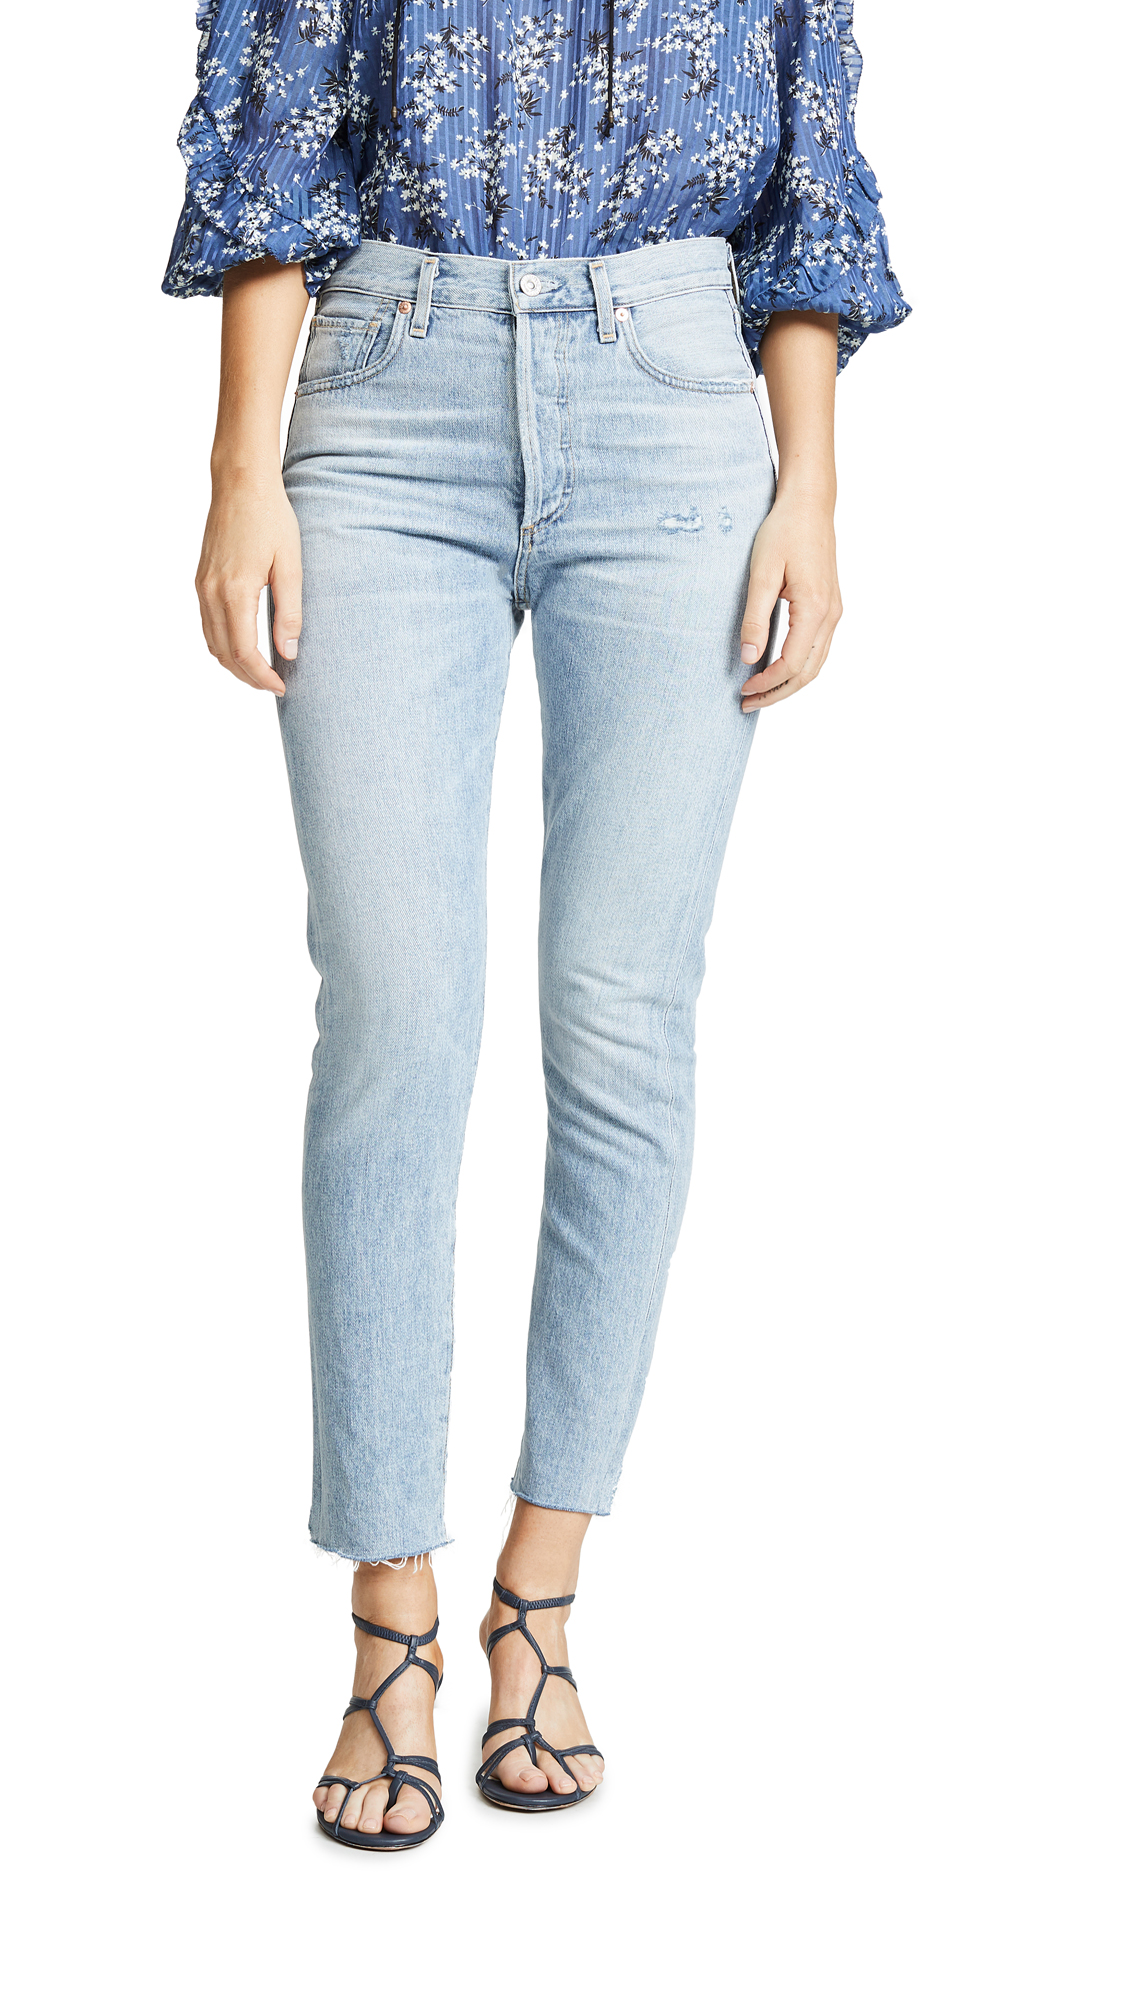 Citizens of Humanity Liya High Rise Classic Fit Jeans - Coastal